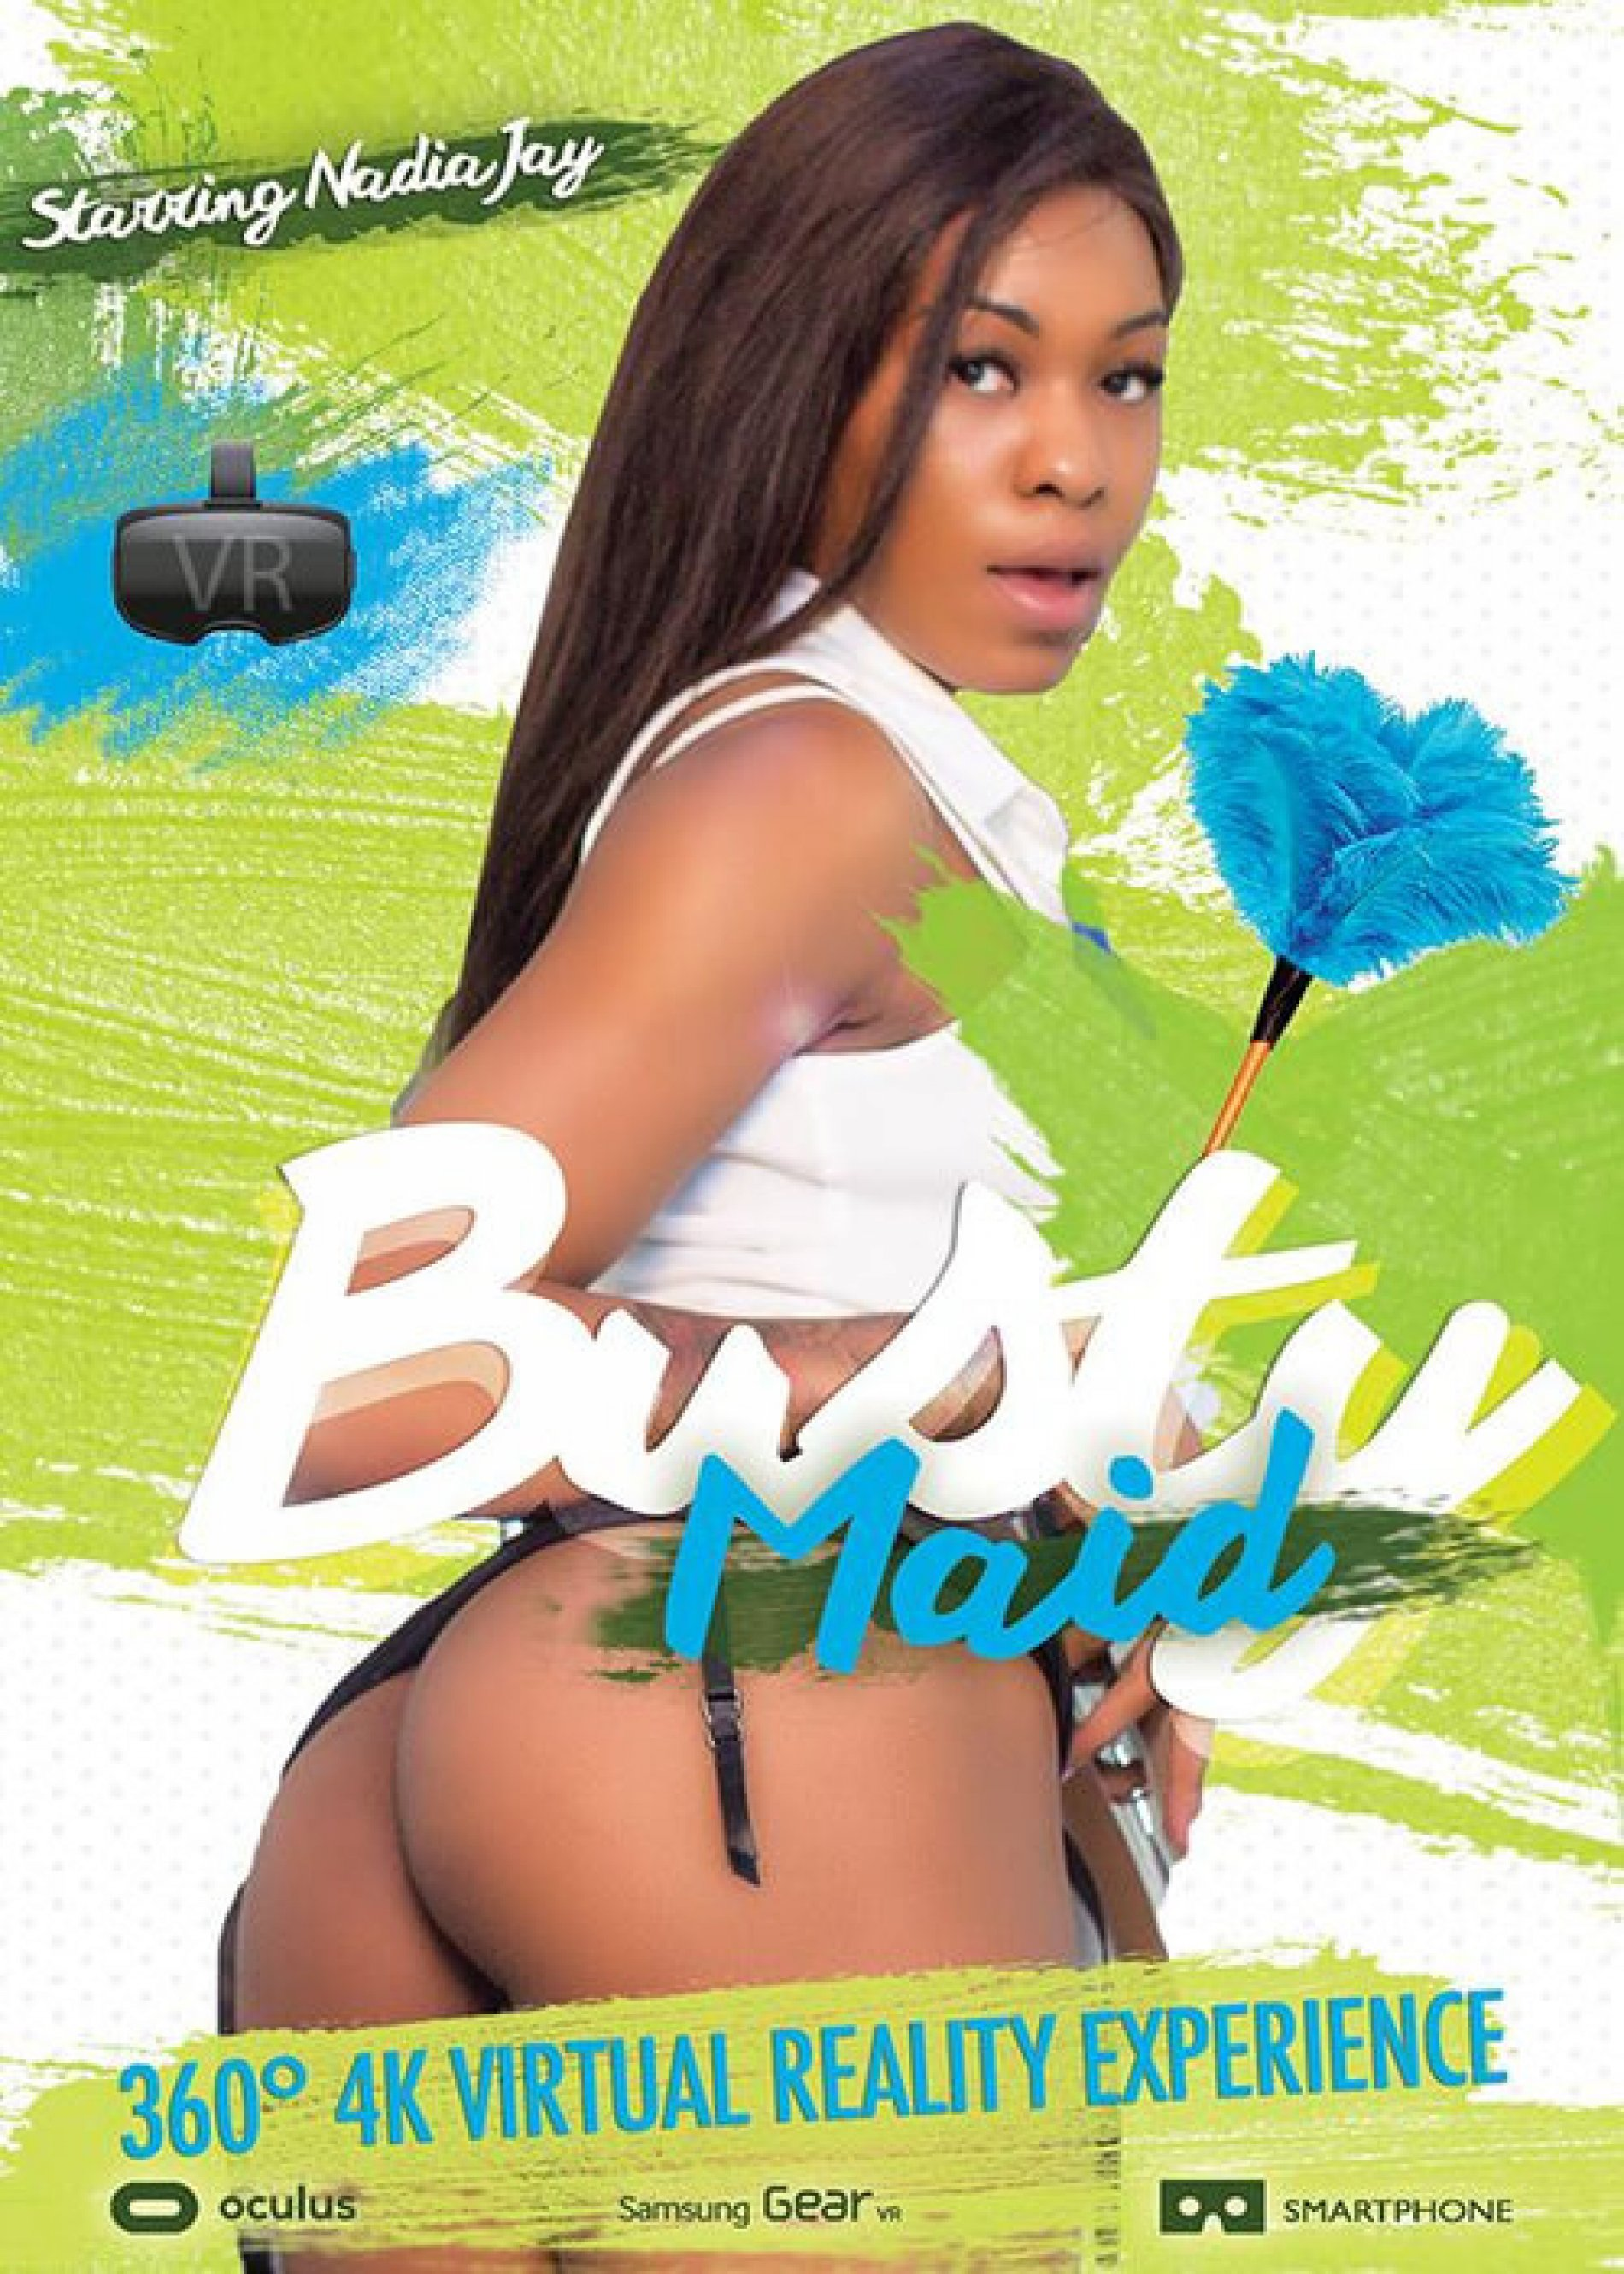 The Busty Black Maid – VR 360°